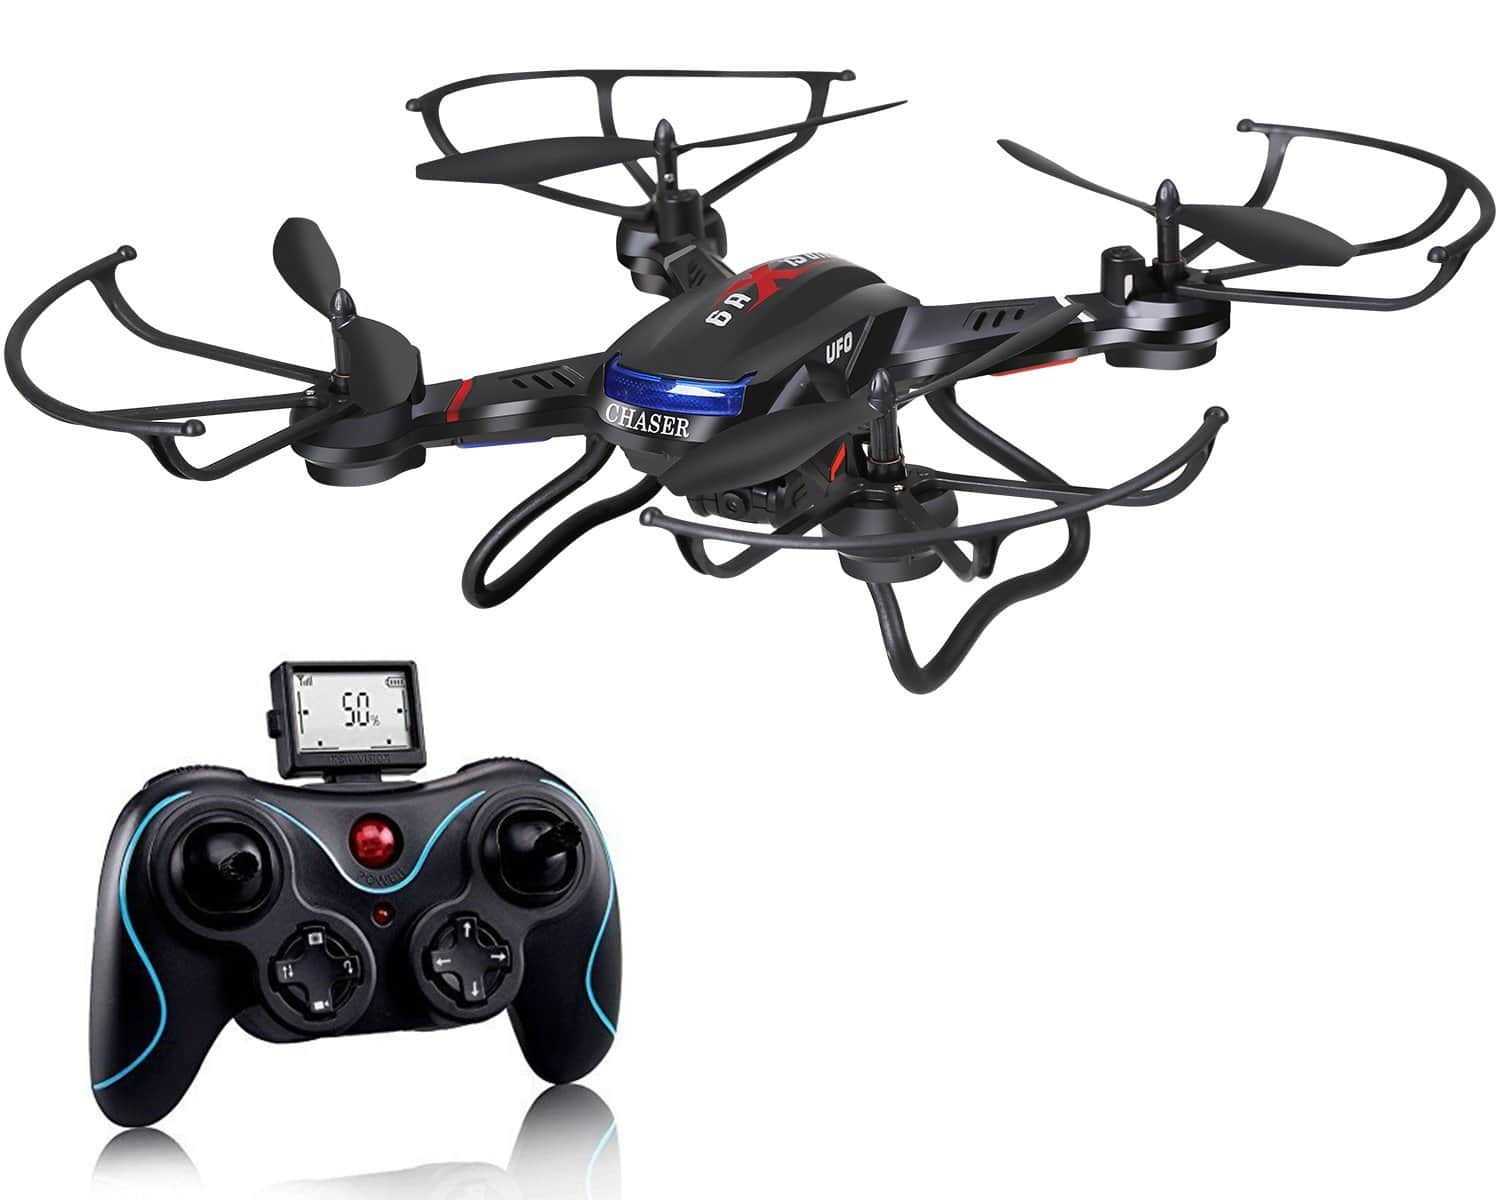 Holy Stone F181C drone with 720p camera. $49.99 after $20 coupon and Lightning Deal on Amazon. LIMITED TIME!!! only 1hour left